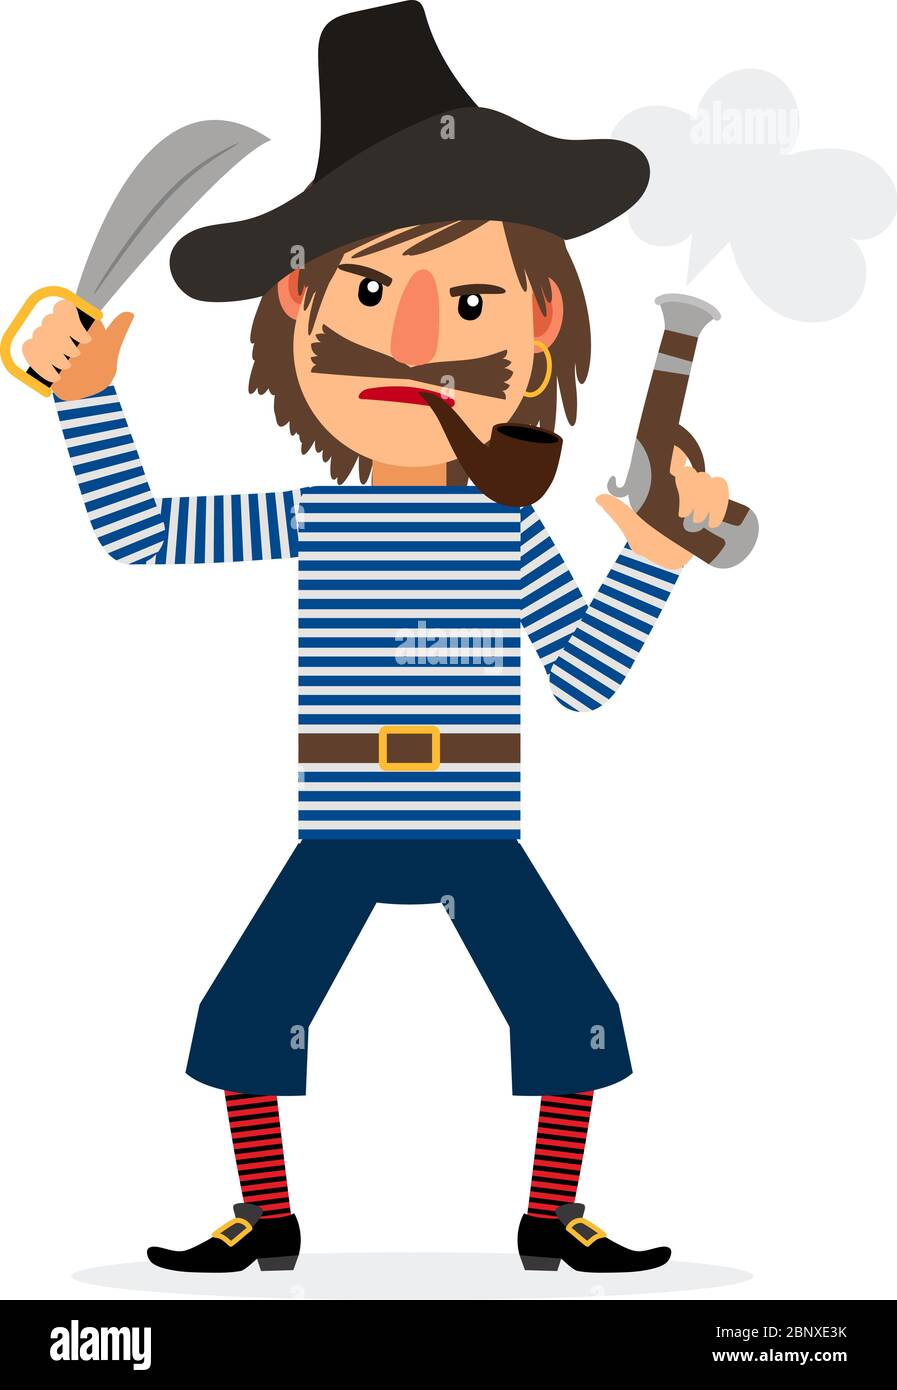 Blackbeard Pirate-cartoon-character-smoking-pipe-and-holding-sword-and-pistol-vector-icon-on-white-background-2BNXE3K